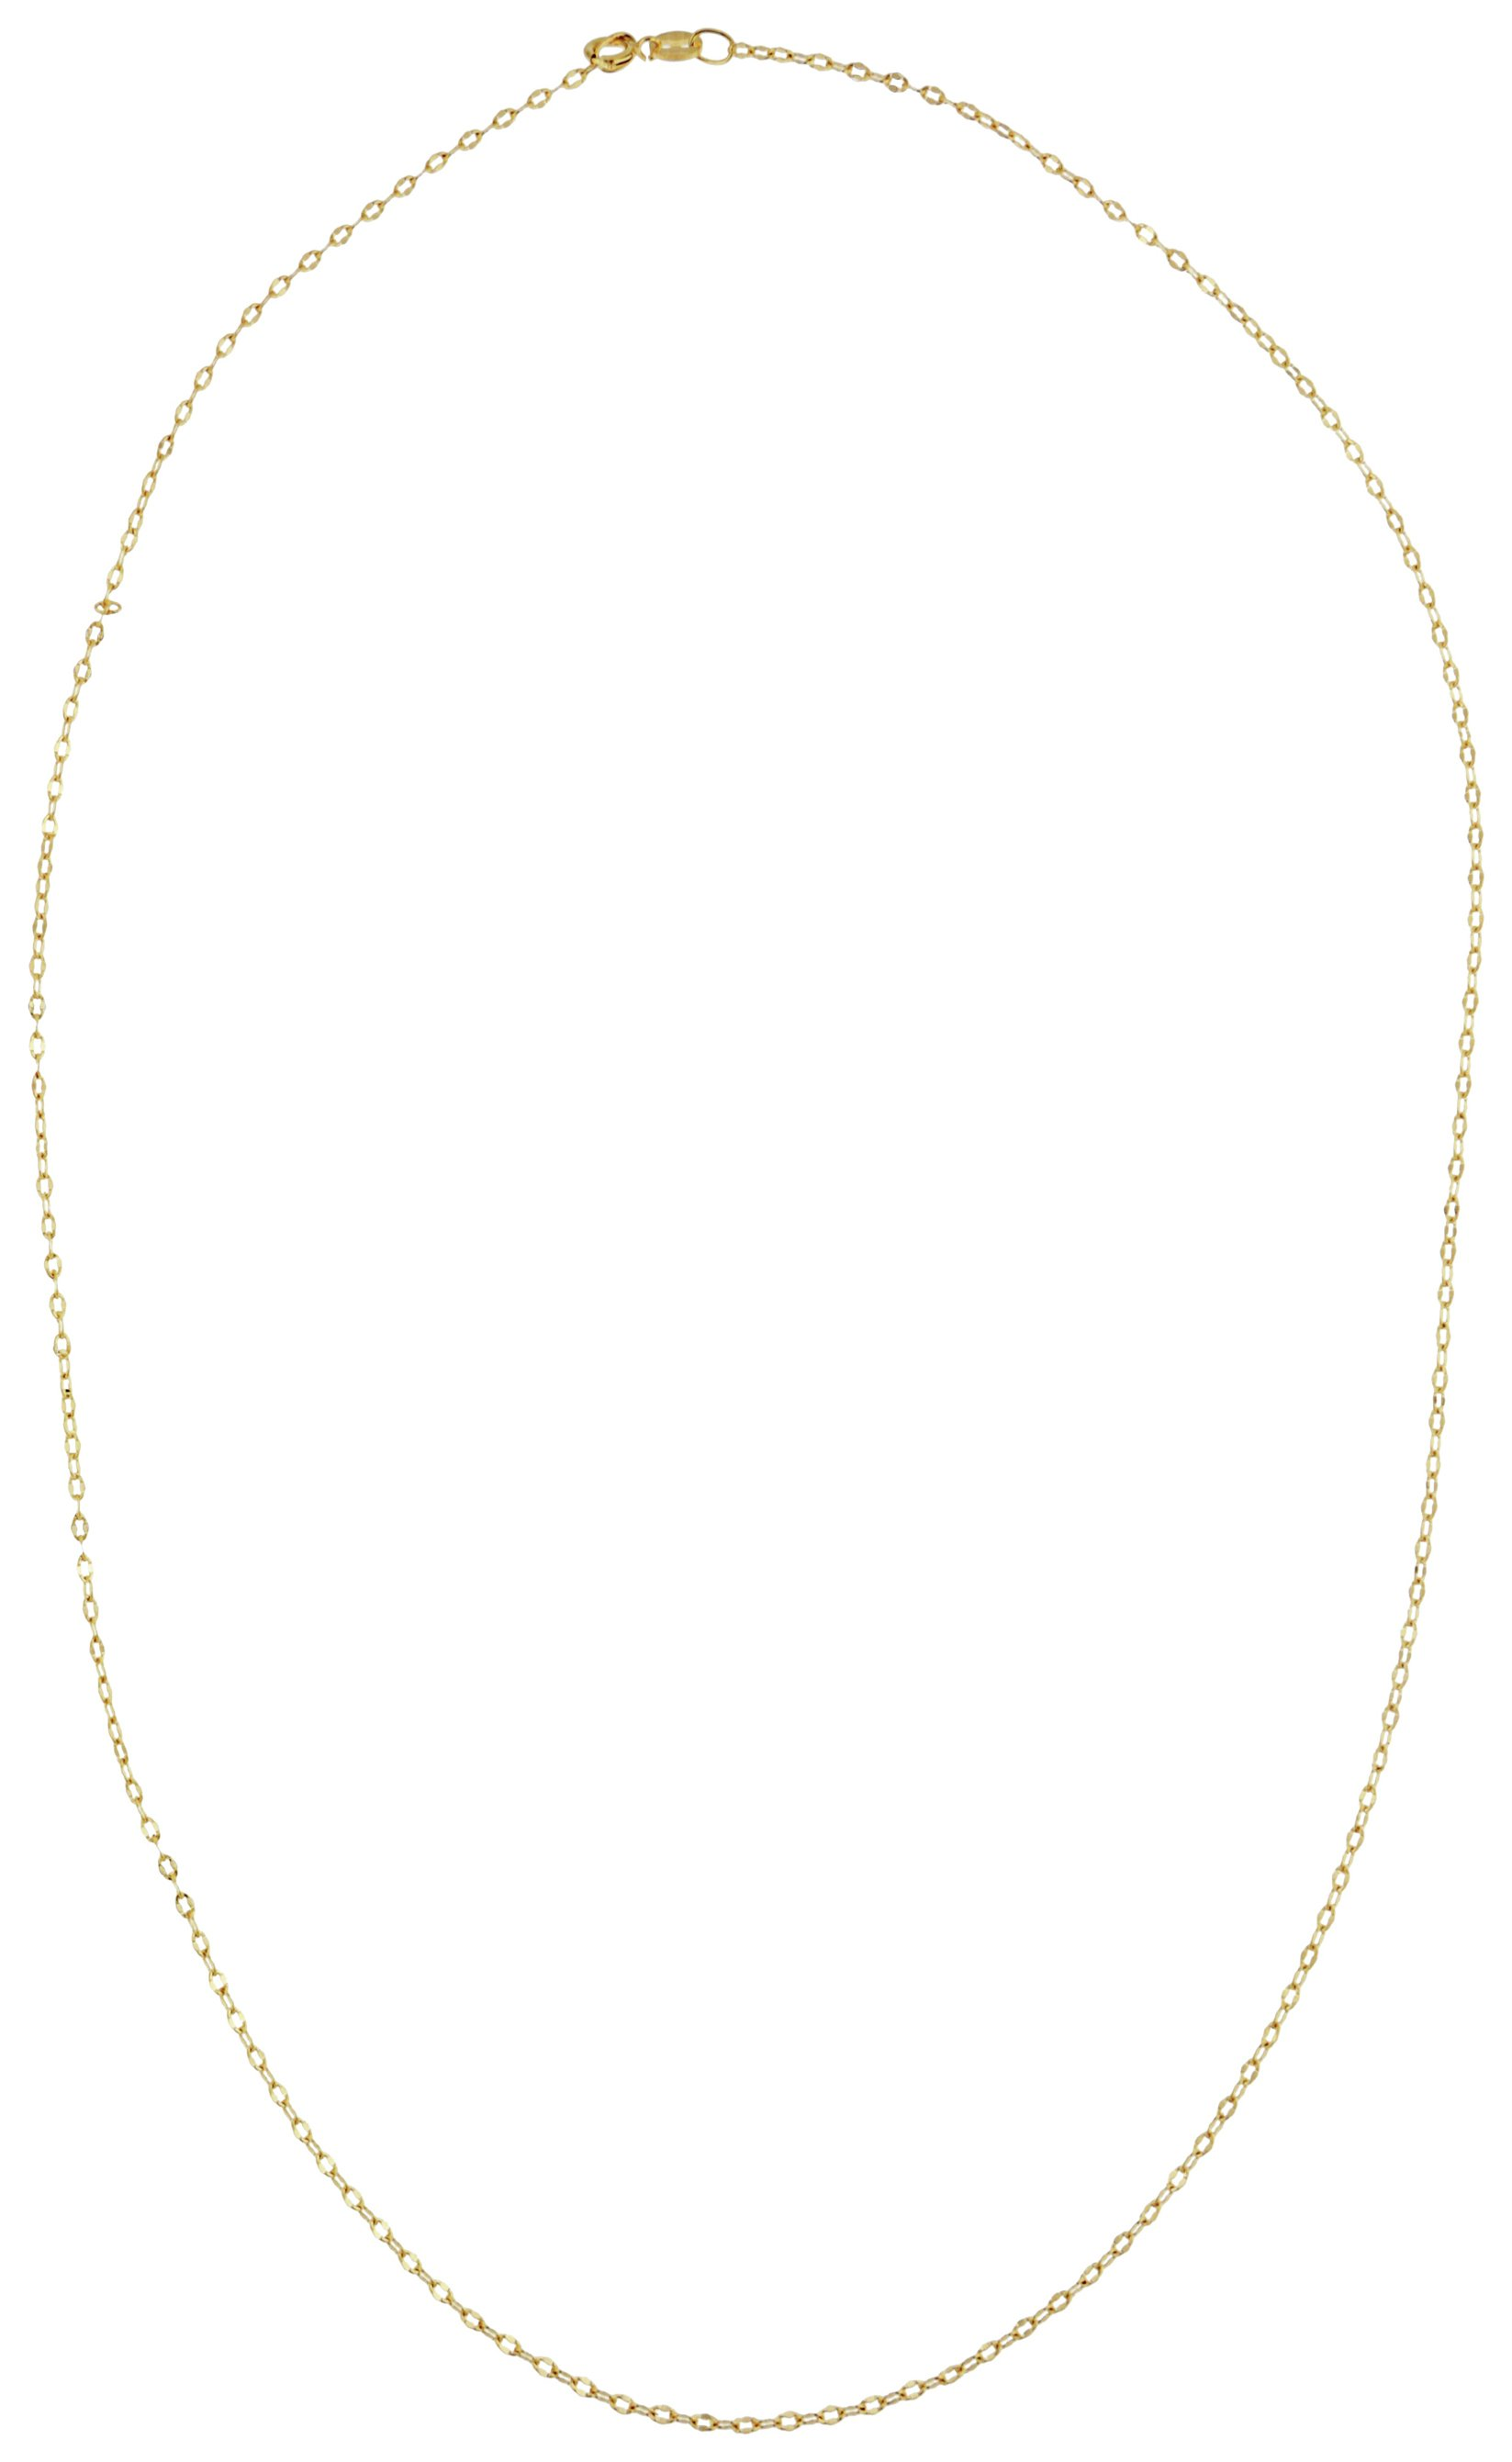 Image of 9 Carat Gold - Solid Look Forzatina Chain.